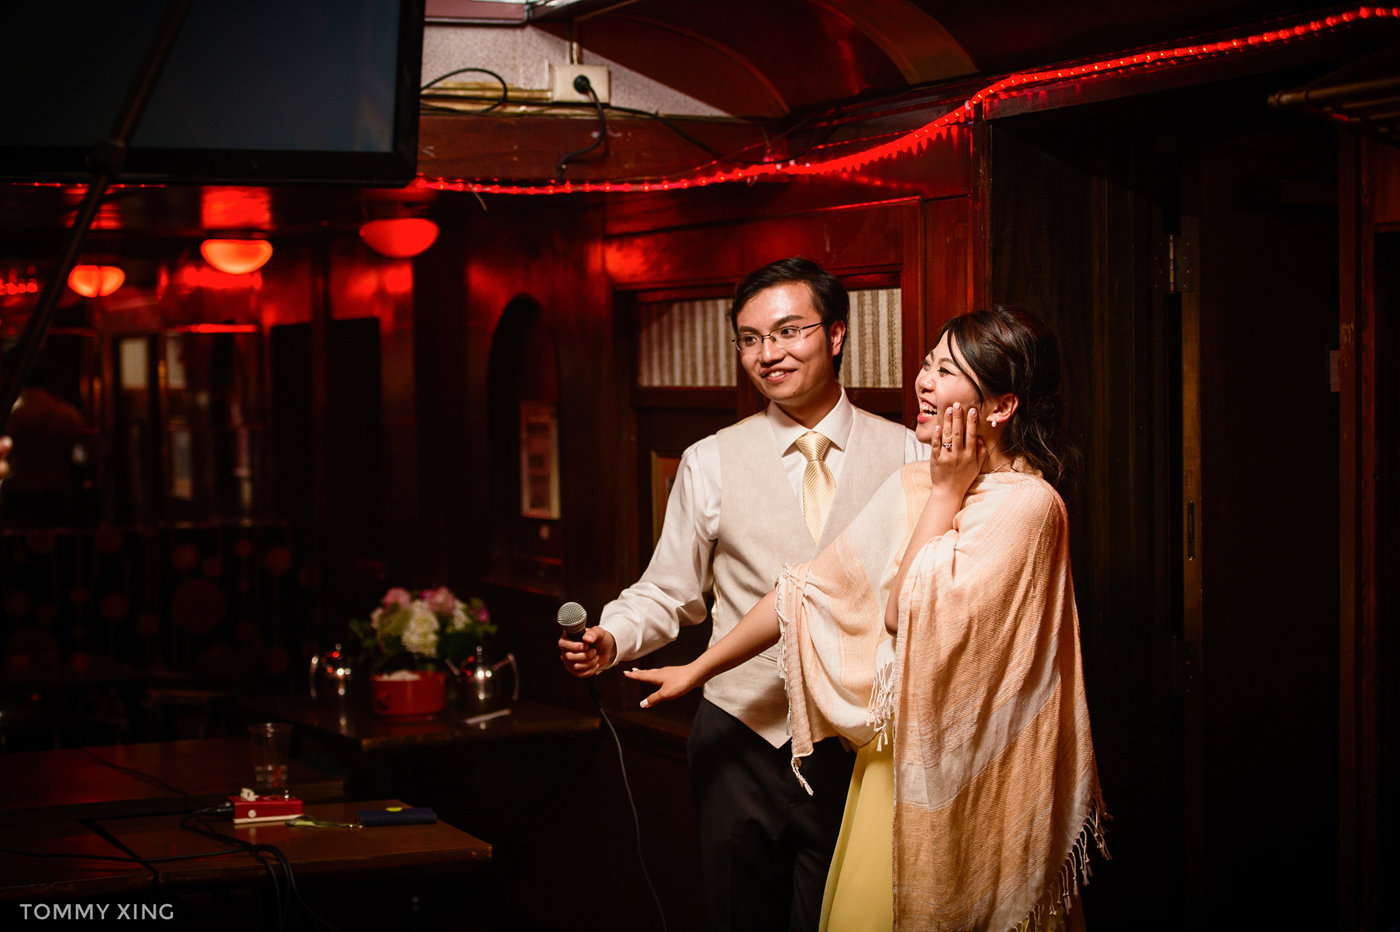 Seattle Wedding and pre wedding Los Angeles Tommy Xing Photography 西雅图洛杉矶旧金山婚礼婚纱照摄影师 231.jpg